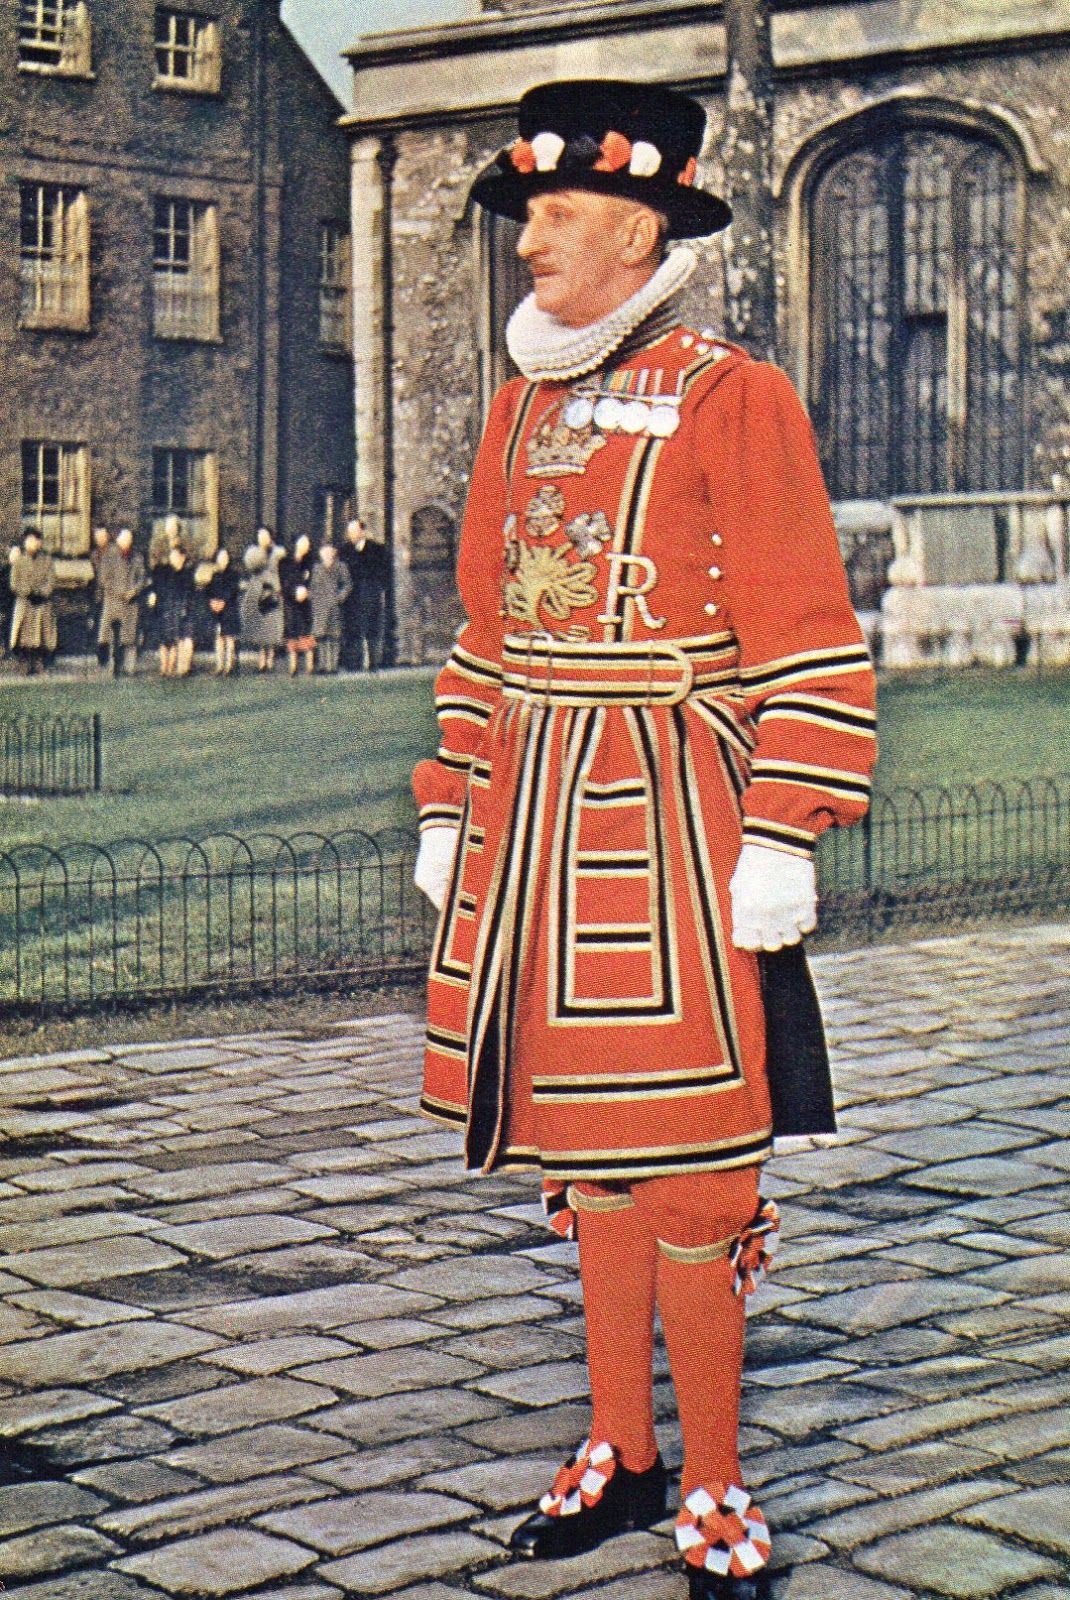 vintage, postcard, London, Beefeater, Tower of London,